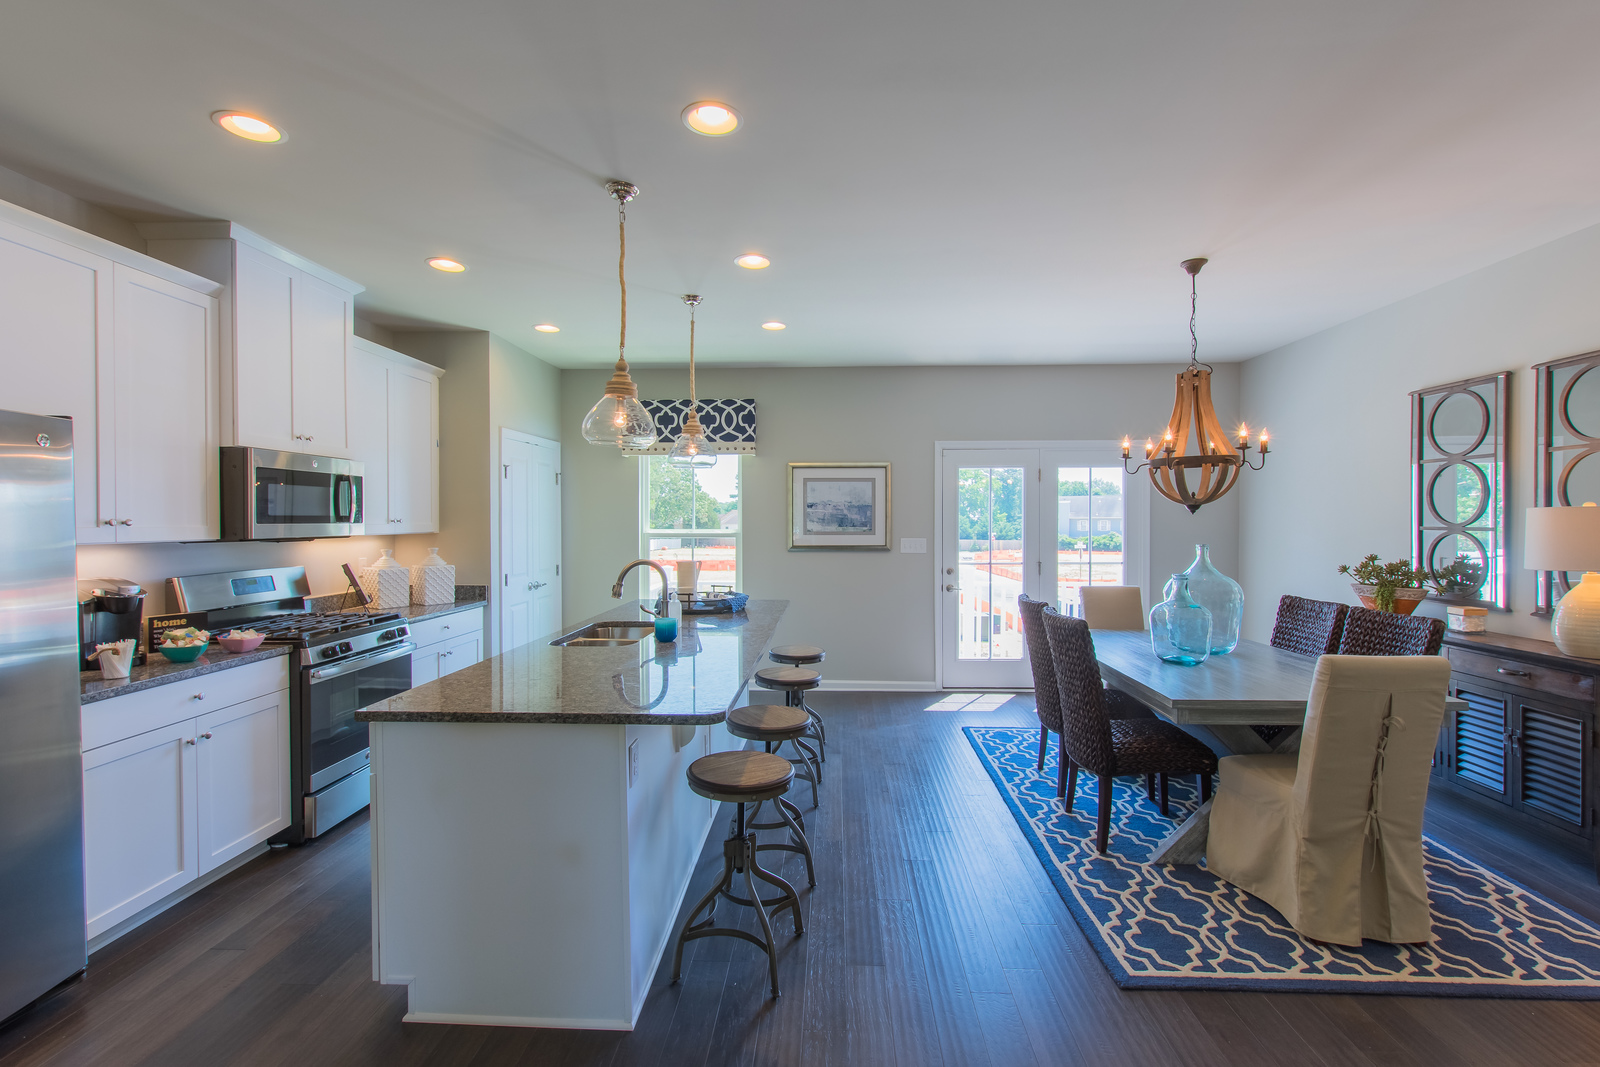 New Homes for sale at Birdneck Crossing (Between Hilltop ...